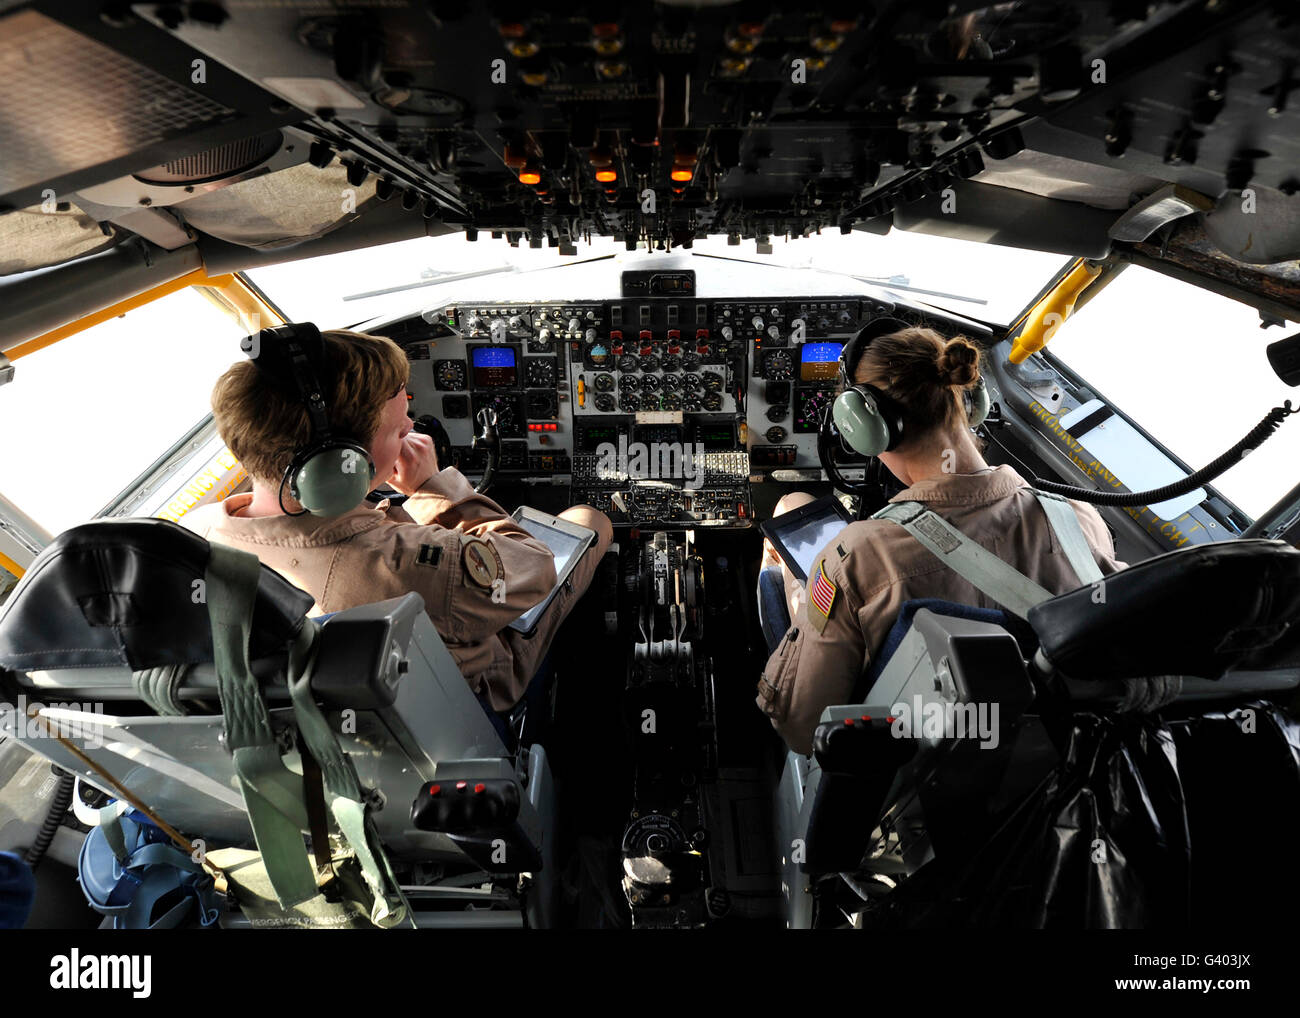 U.S. Air Force pilots discuss refueling approach plans. - Stock Image